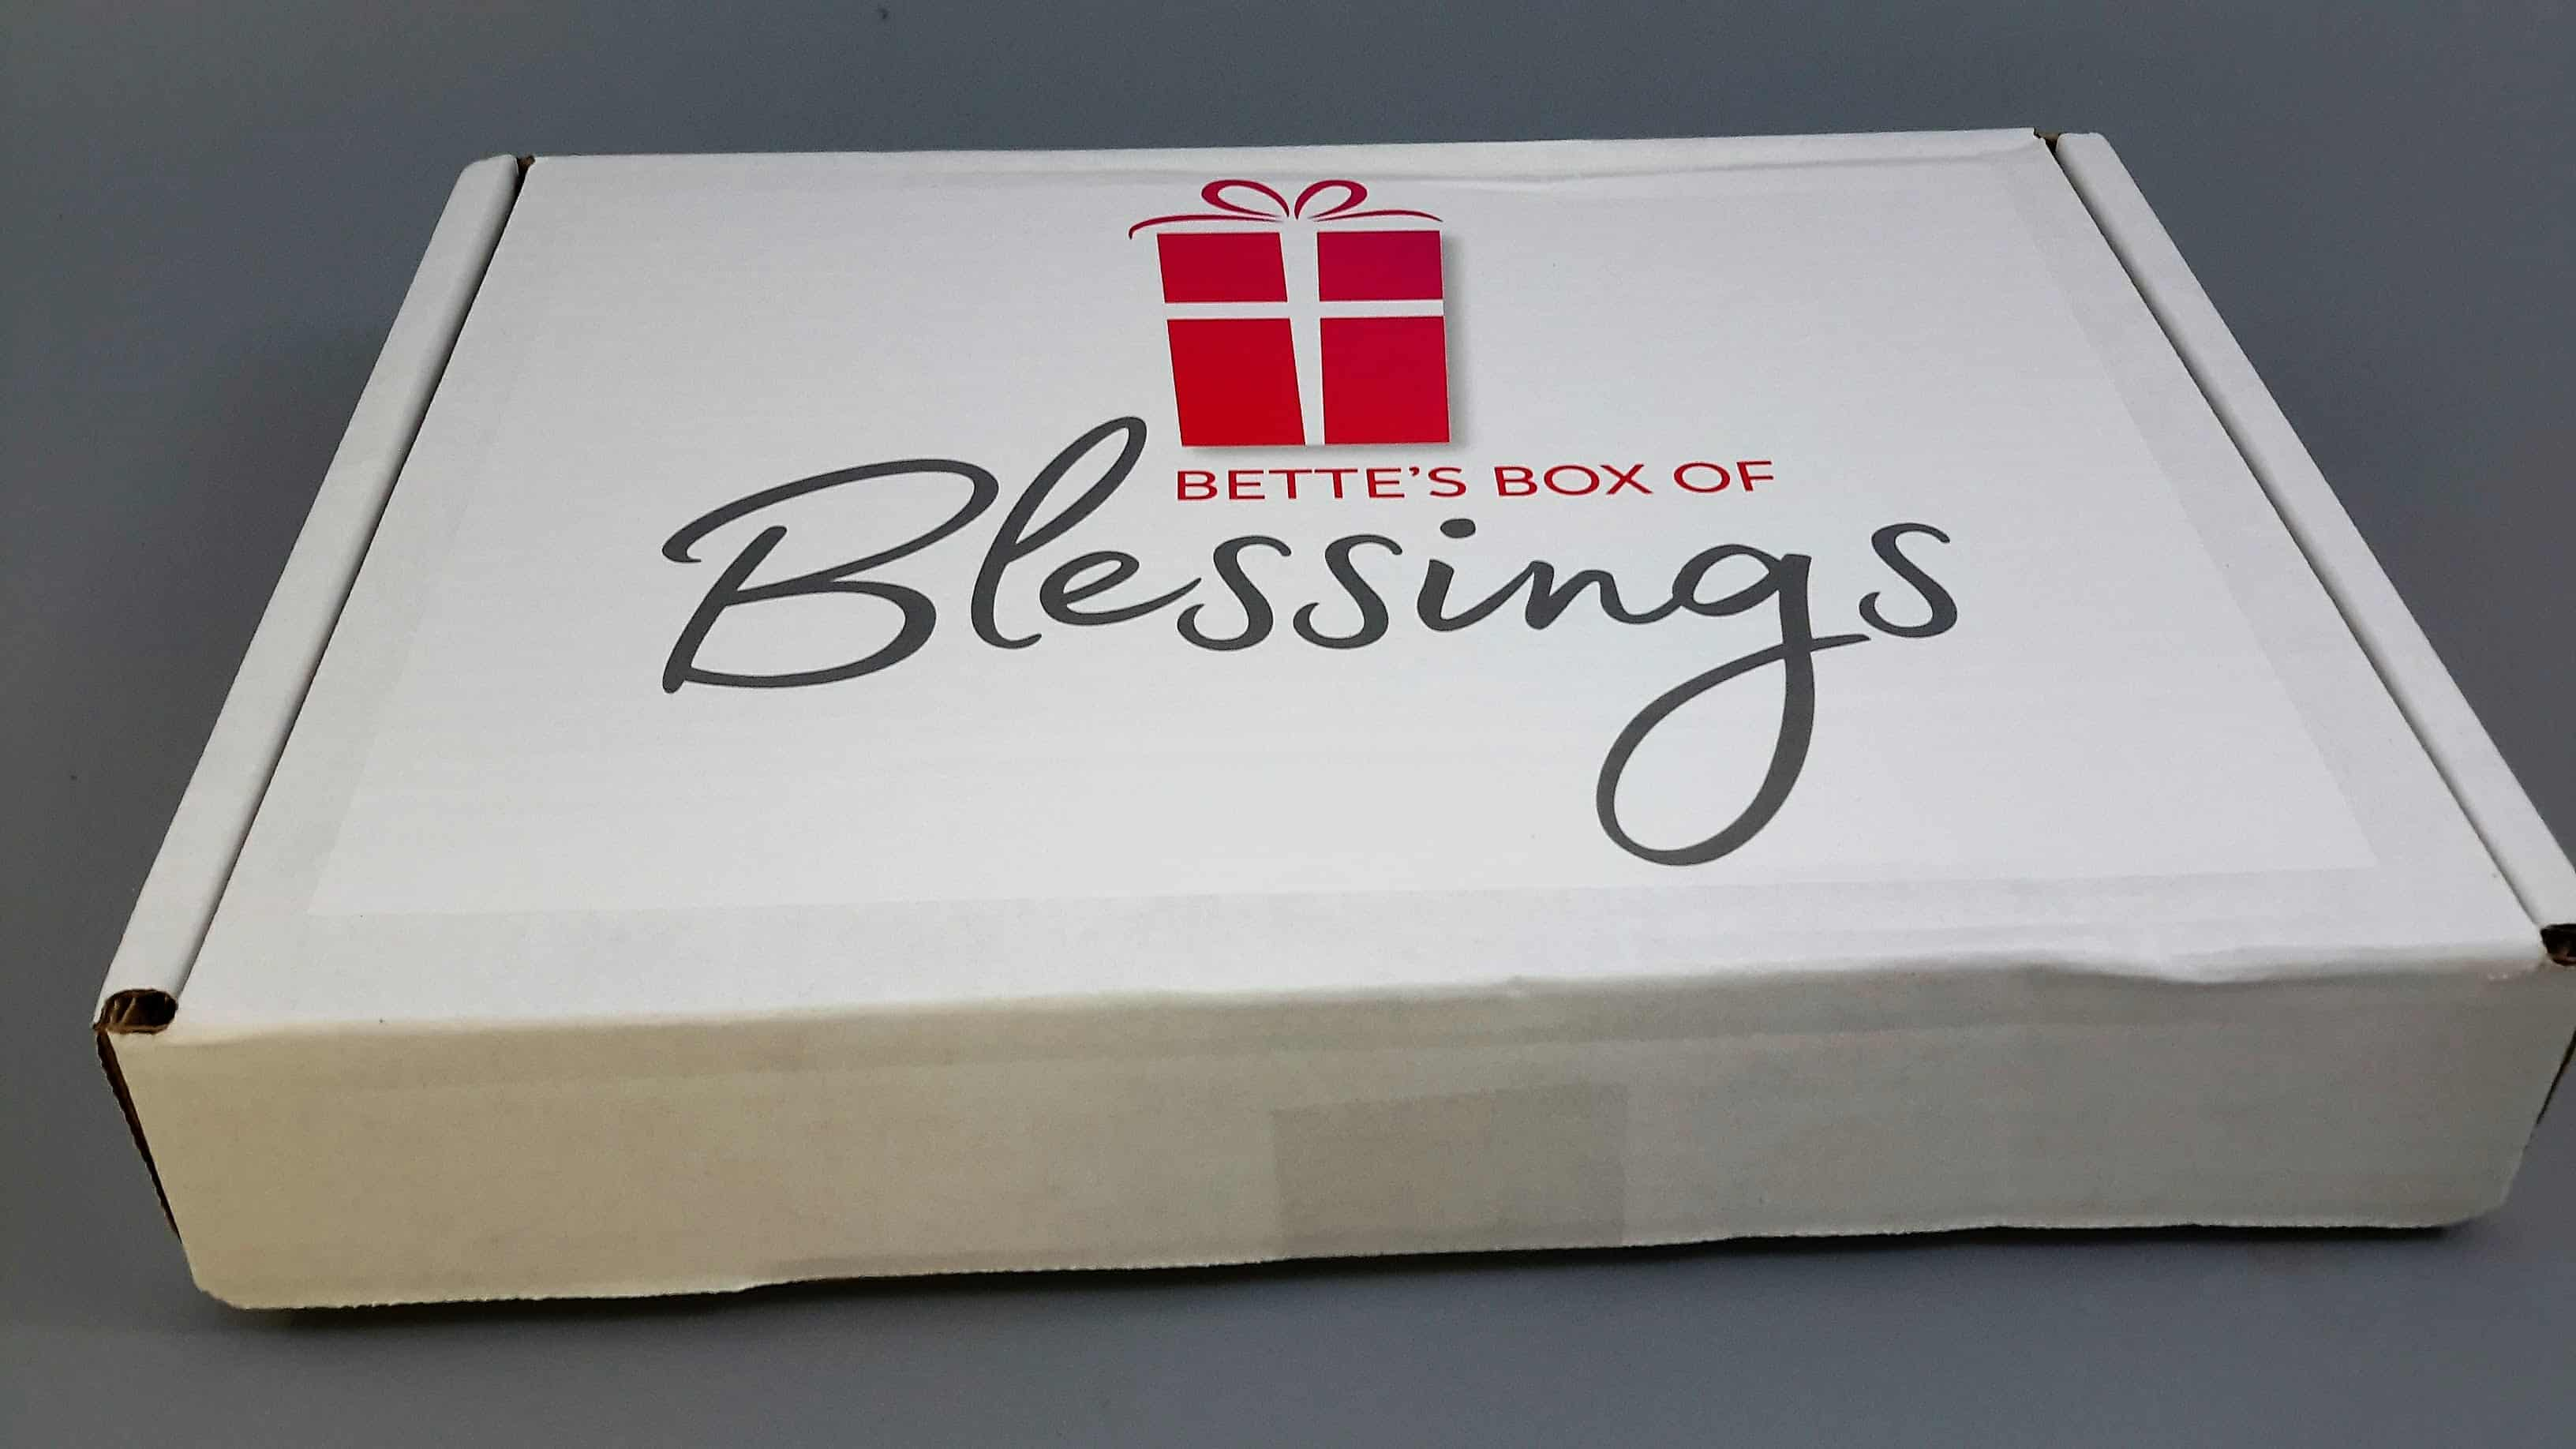 Bettes box of blessings subscription box review coupon bettes box of blessings is a subscription made with christians in mind it gives you a collection of gifts for yourself to help you grow in your faith and fandeluxe Choice Image